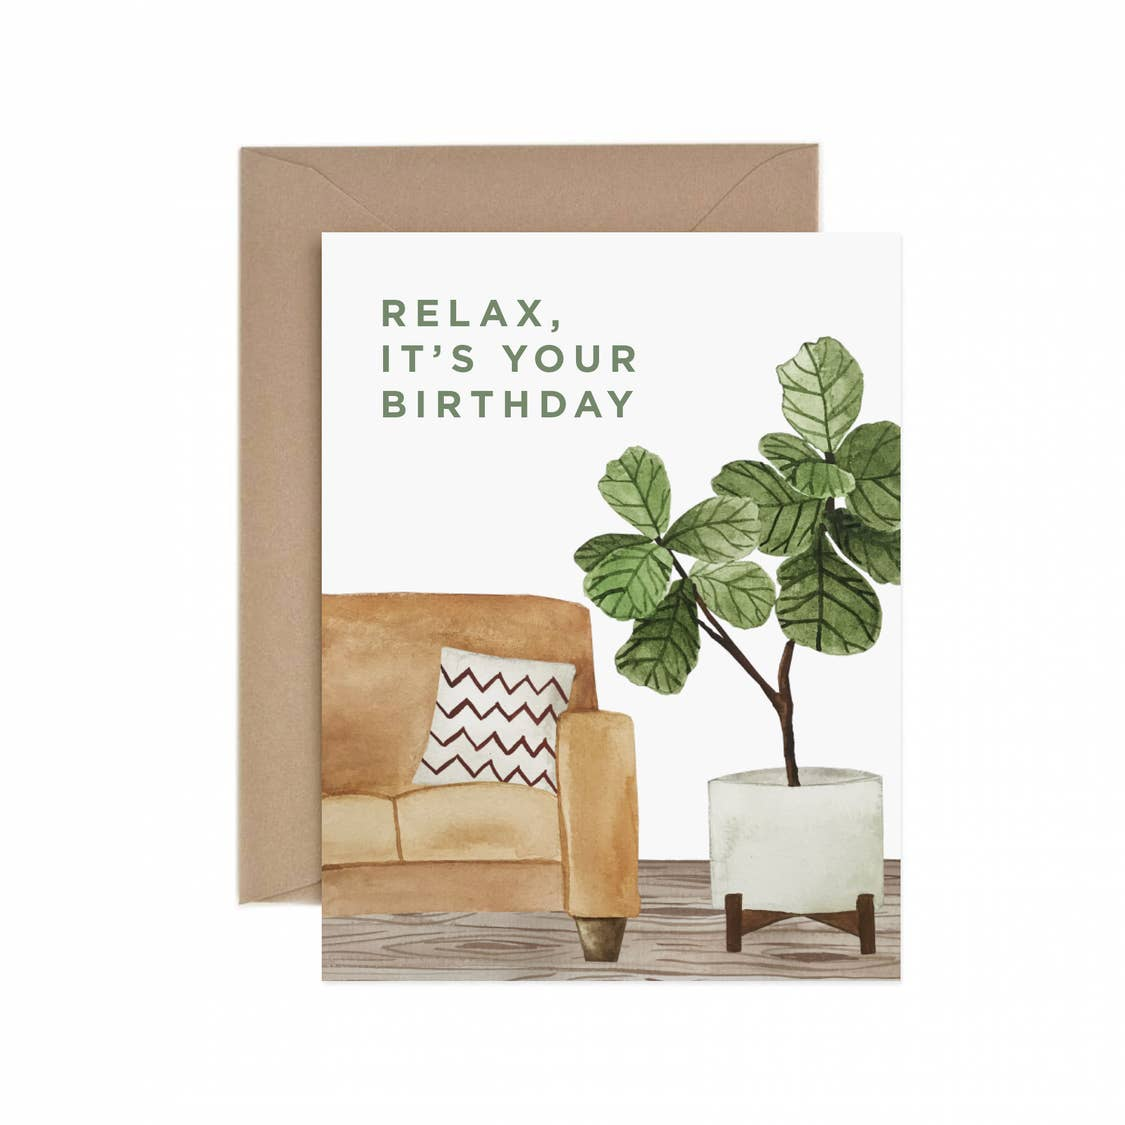 Relax Its Your Birthday Card - Urban Sprouts